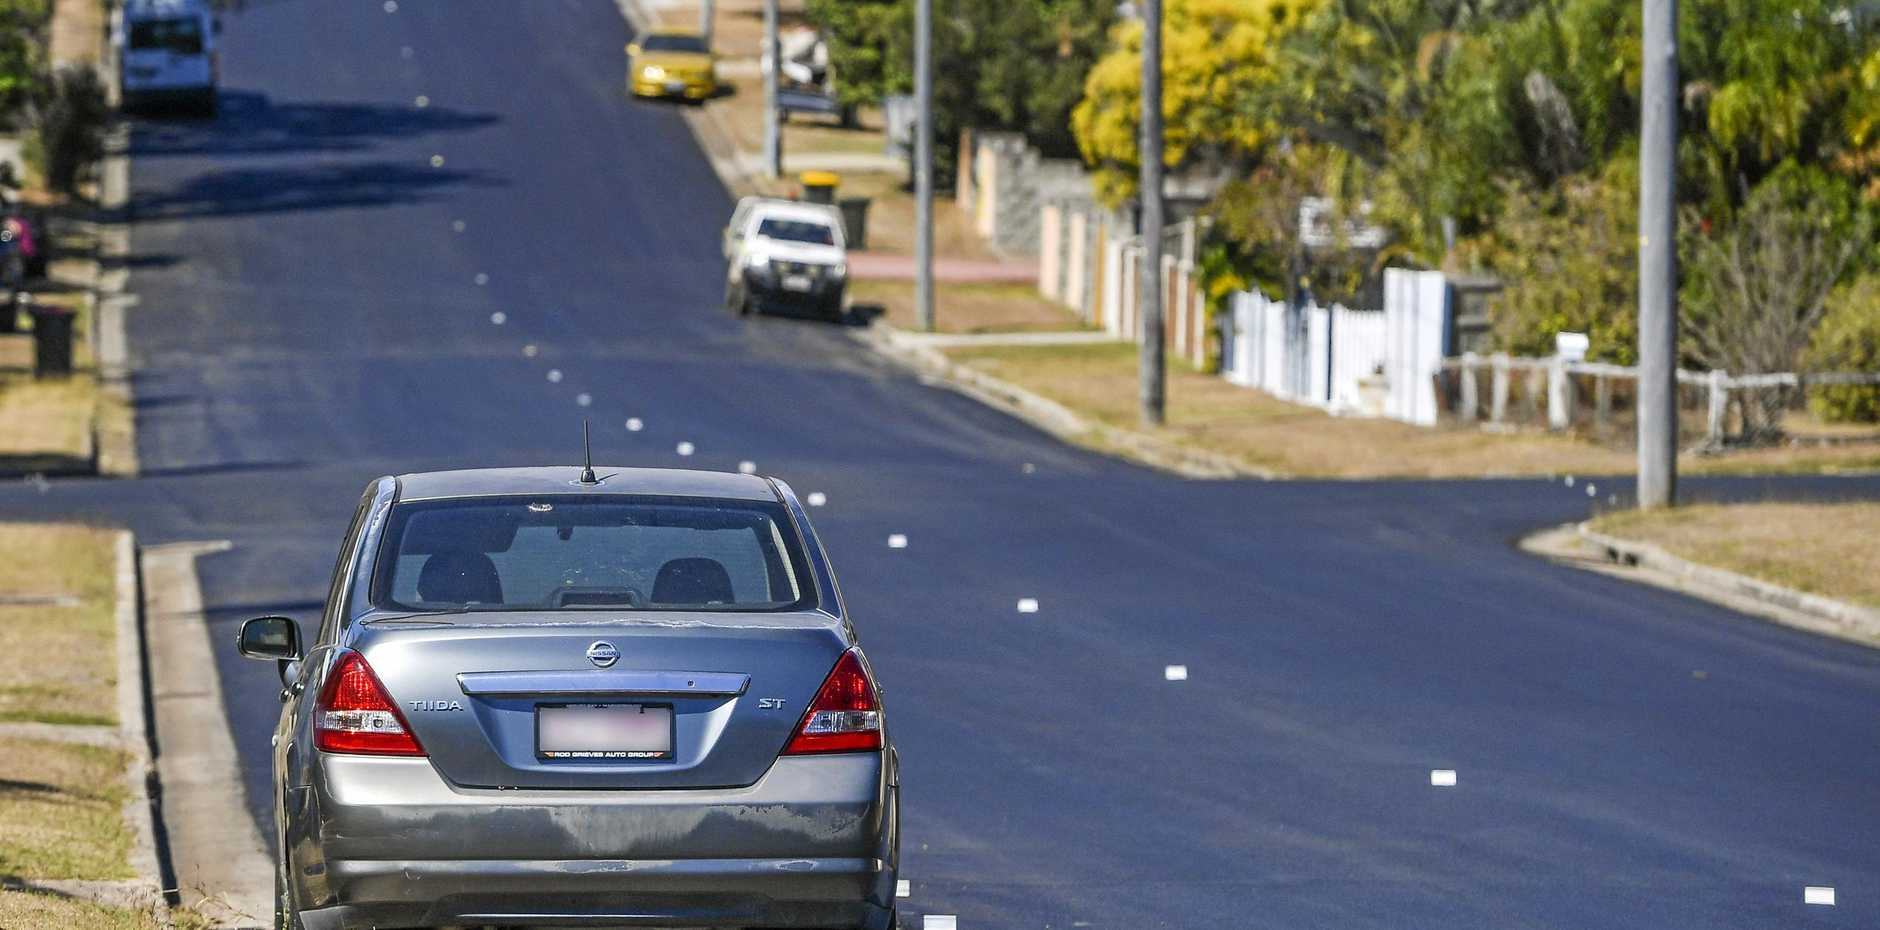 SQUARED OFF: Council workers were forced to bitumen around a car on Auckland St after upgrades were performed on the stretch of road last week.